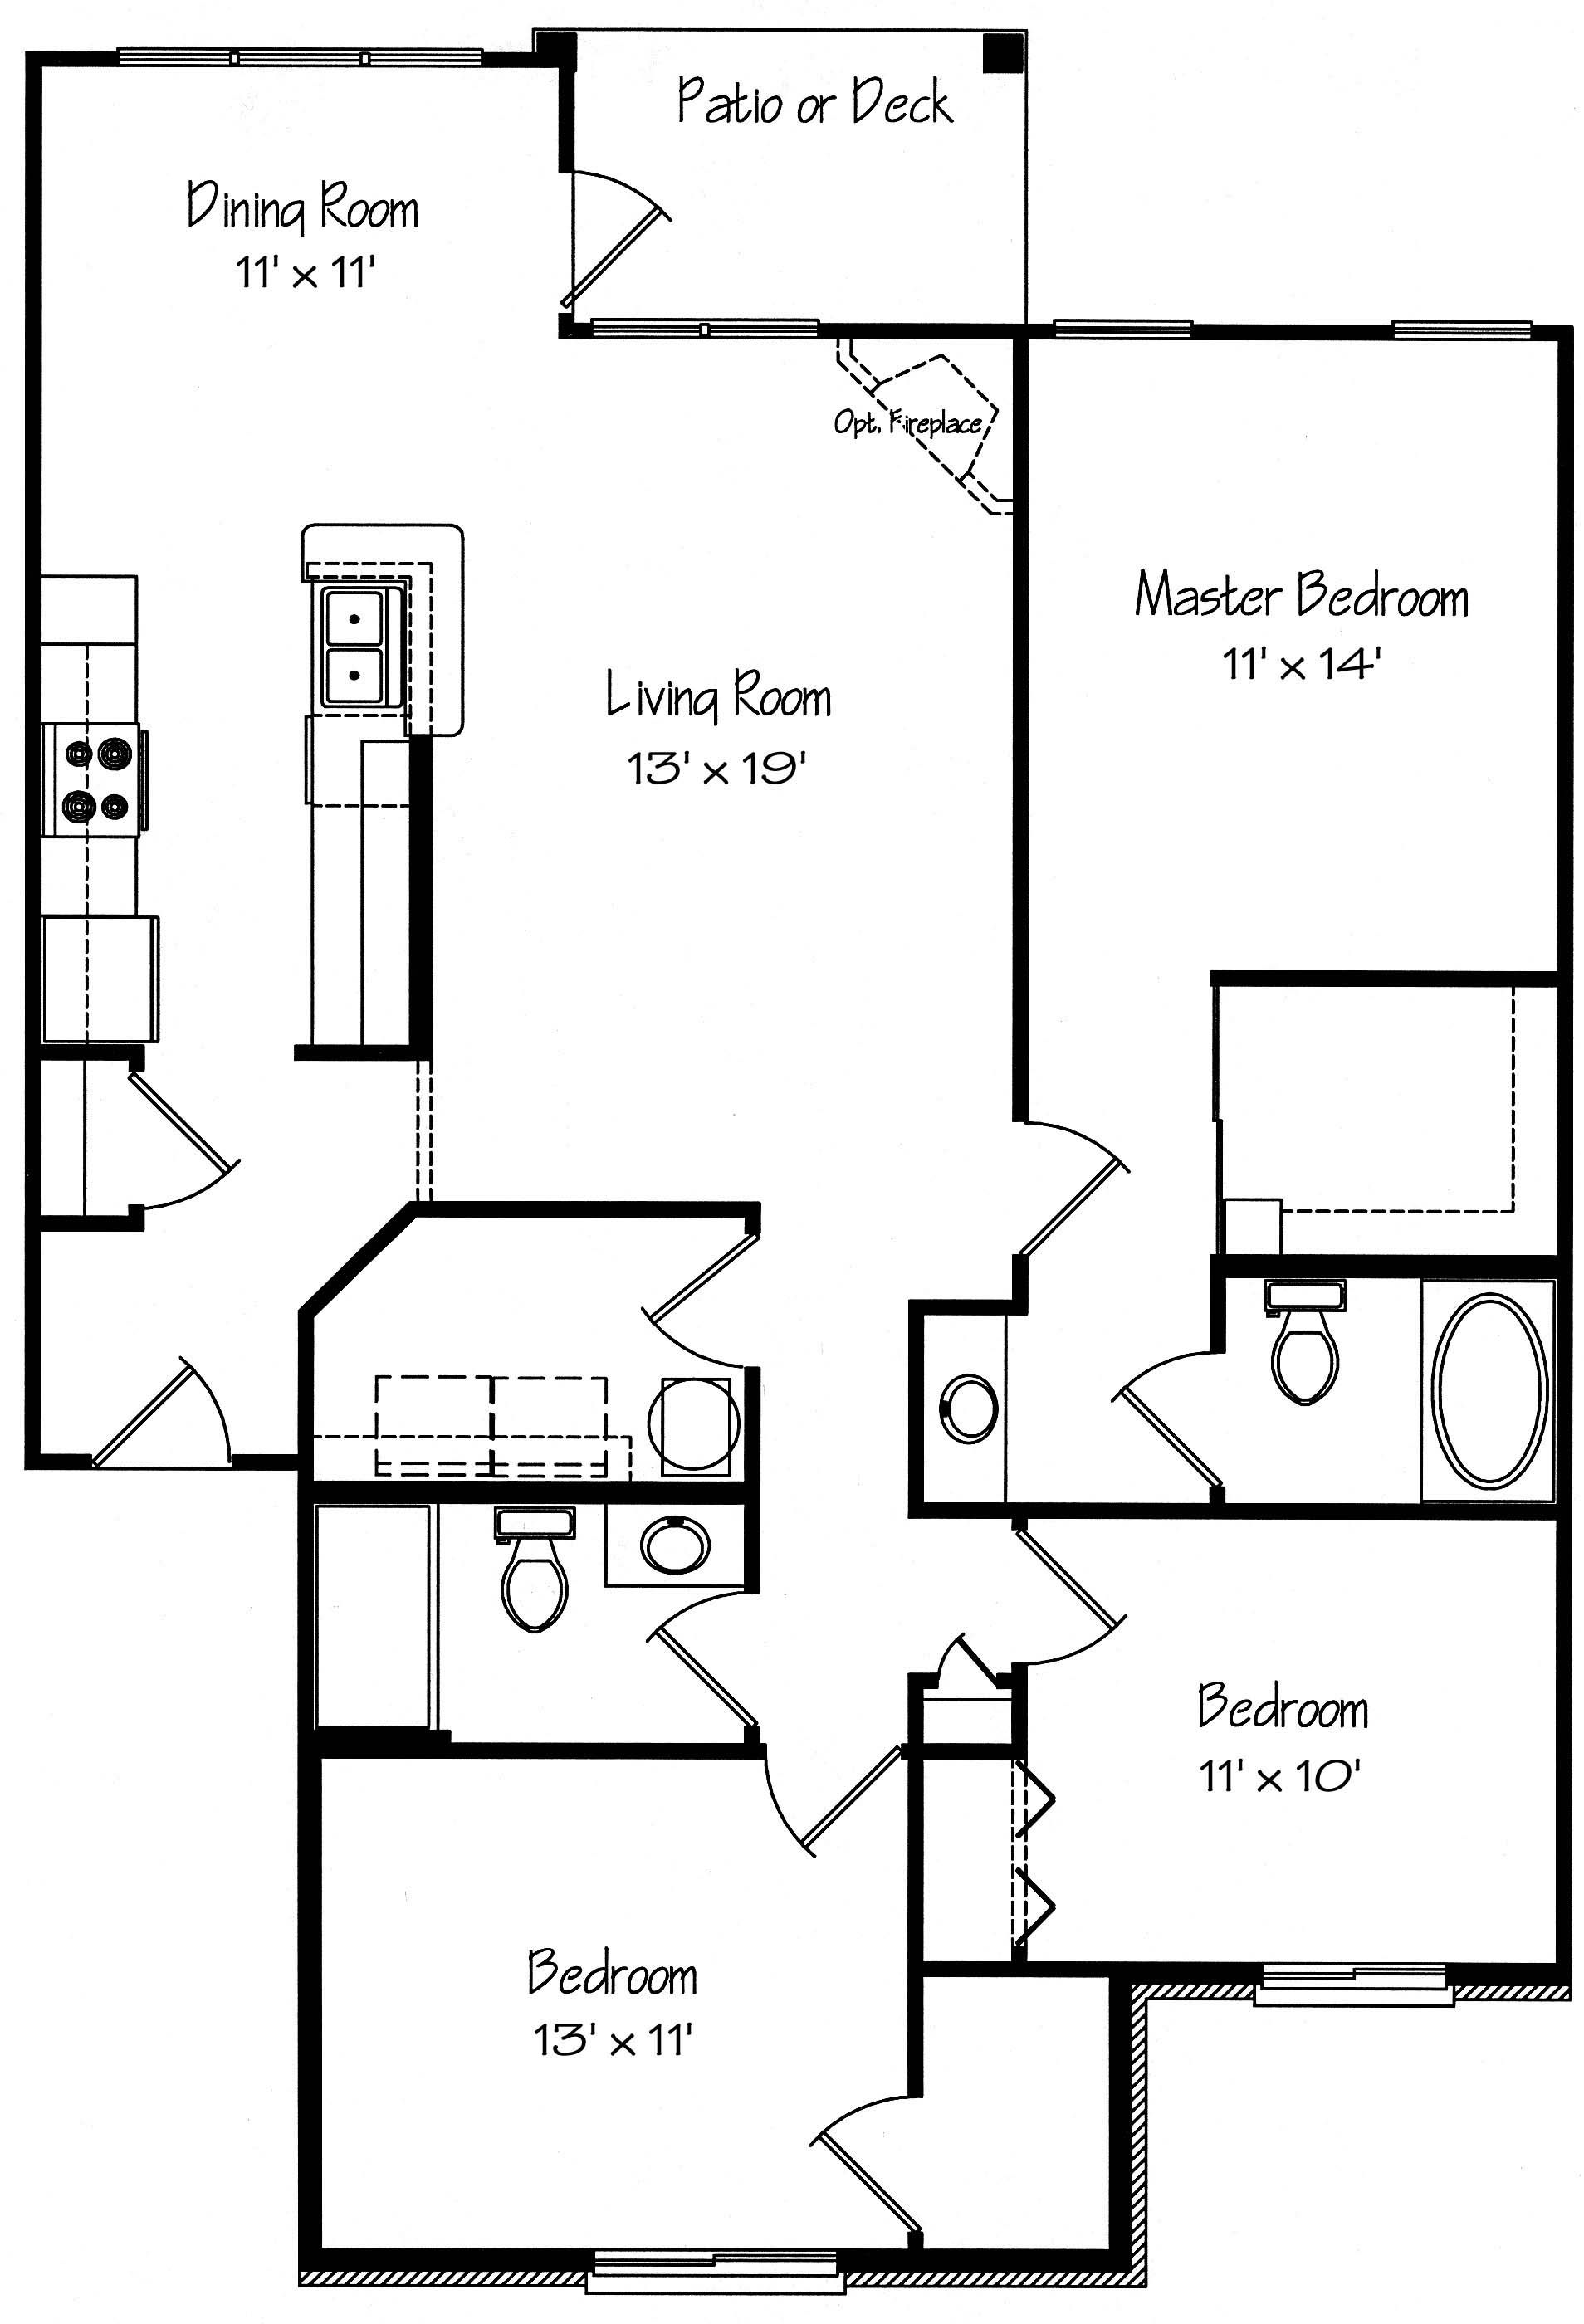 Latitudes Apartments (With images) Indianapolis